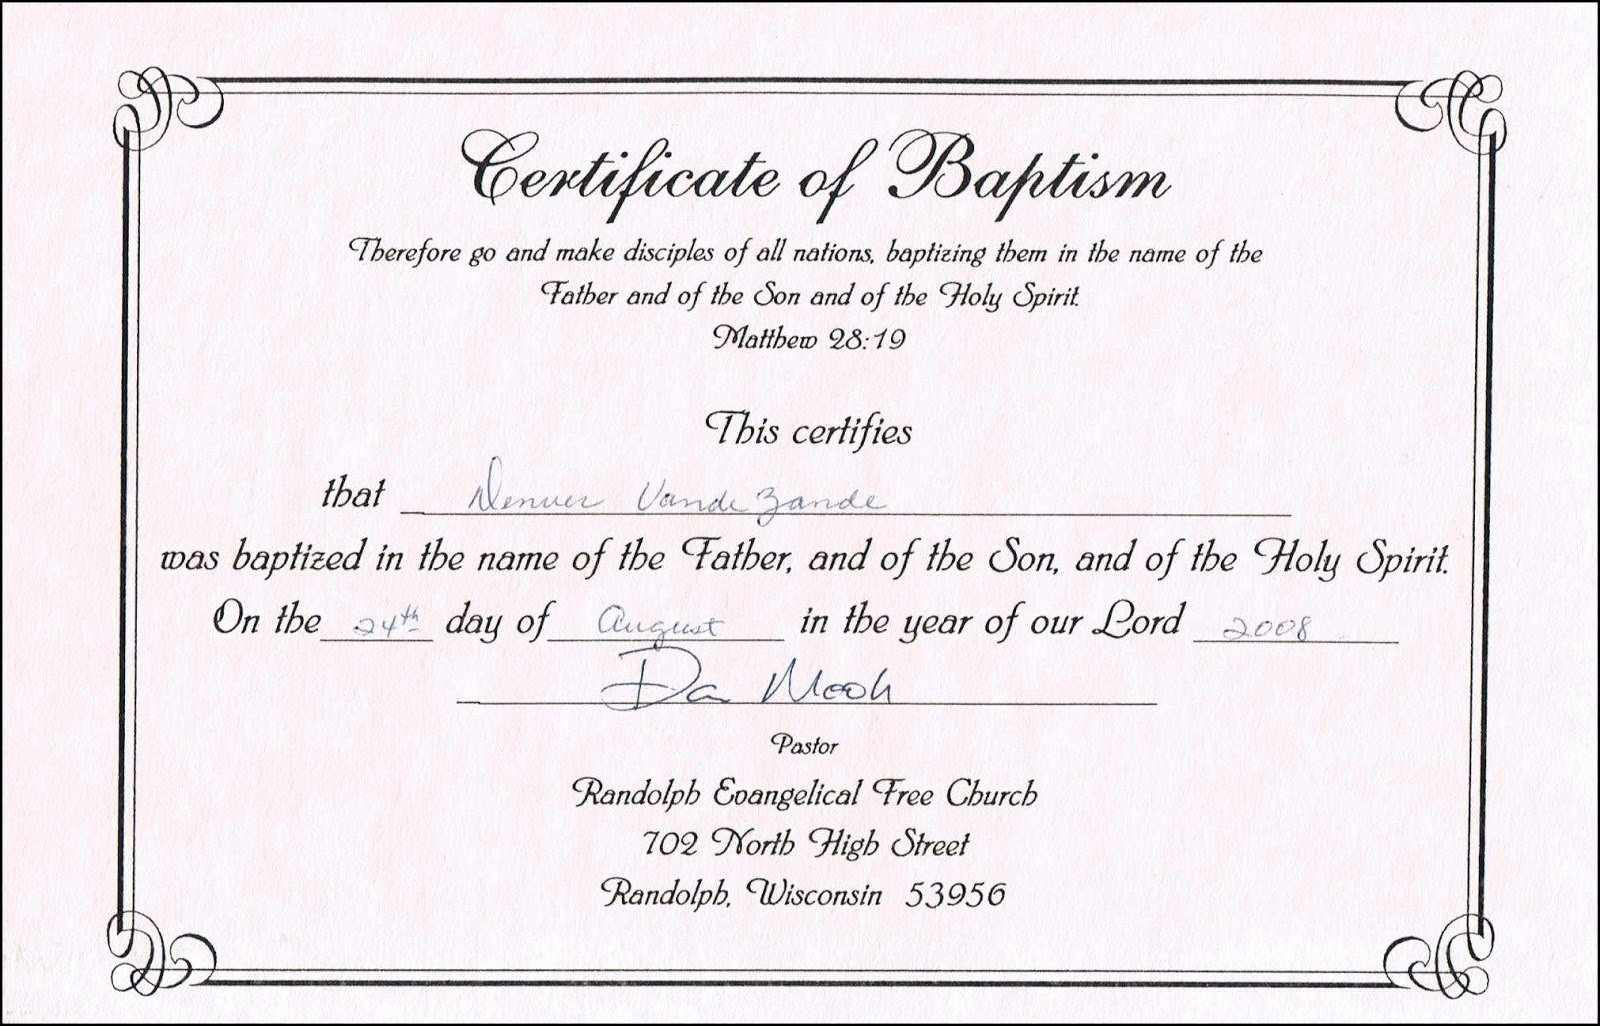 Roman Catholic Baptism Certificate Template New Sample Baptism Certificate Templates